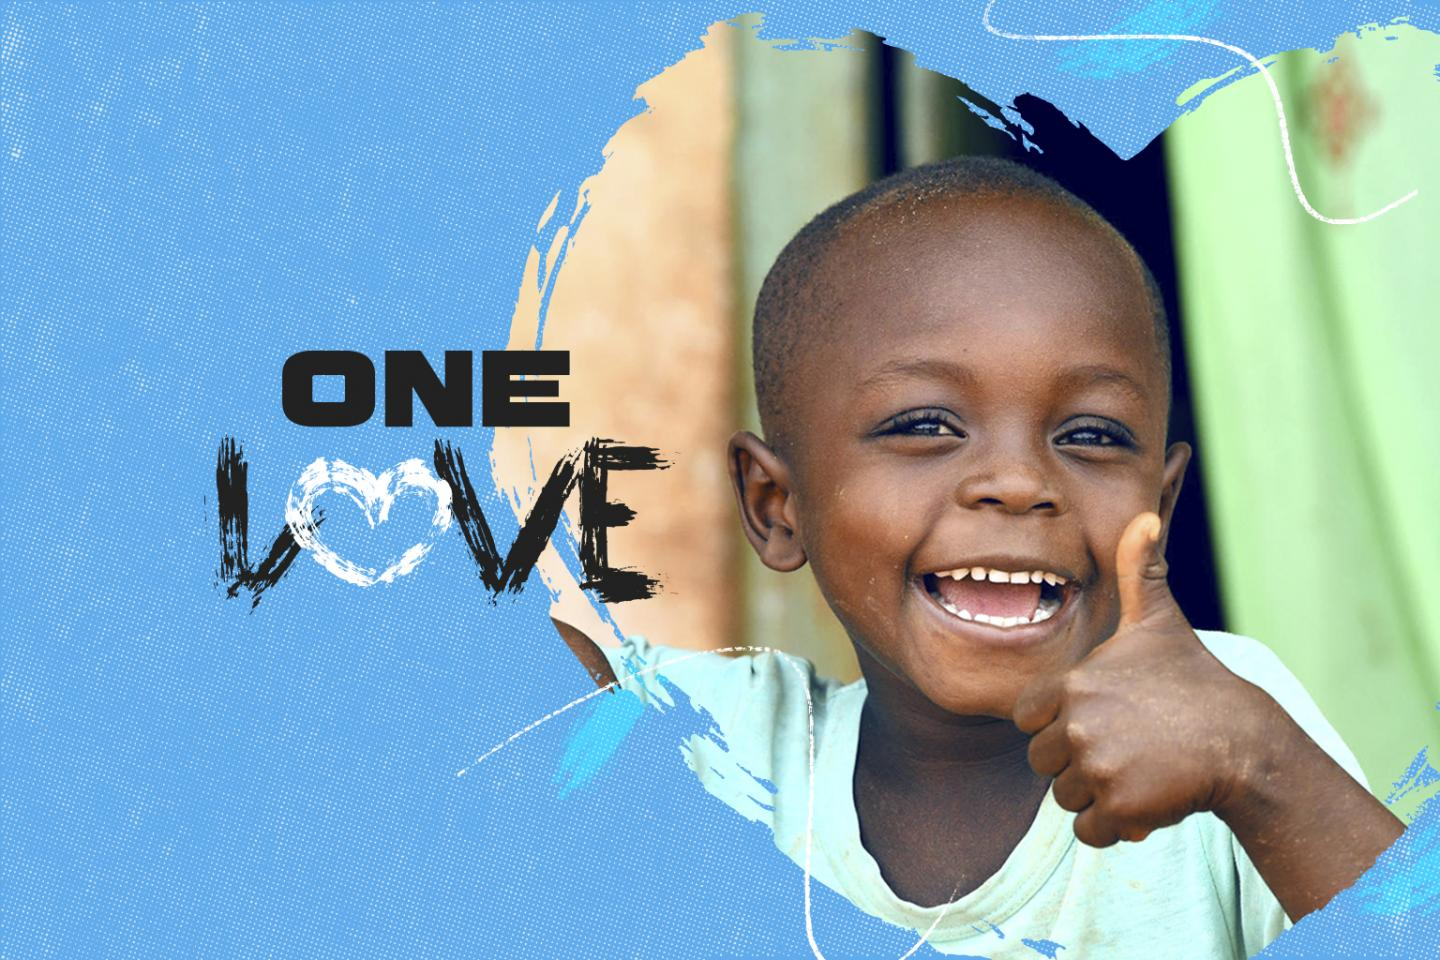 One Love | UNICEF